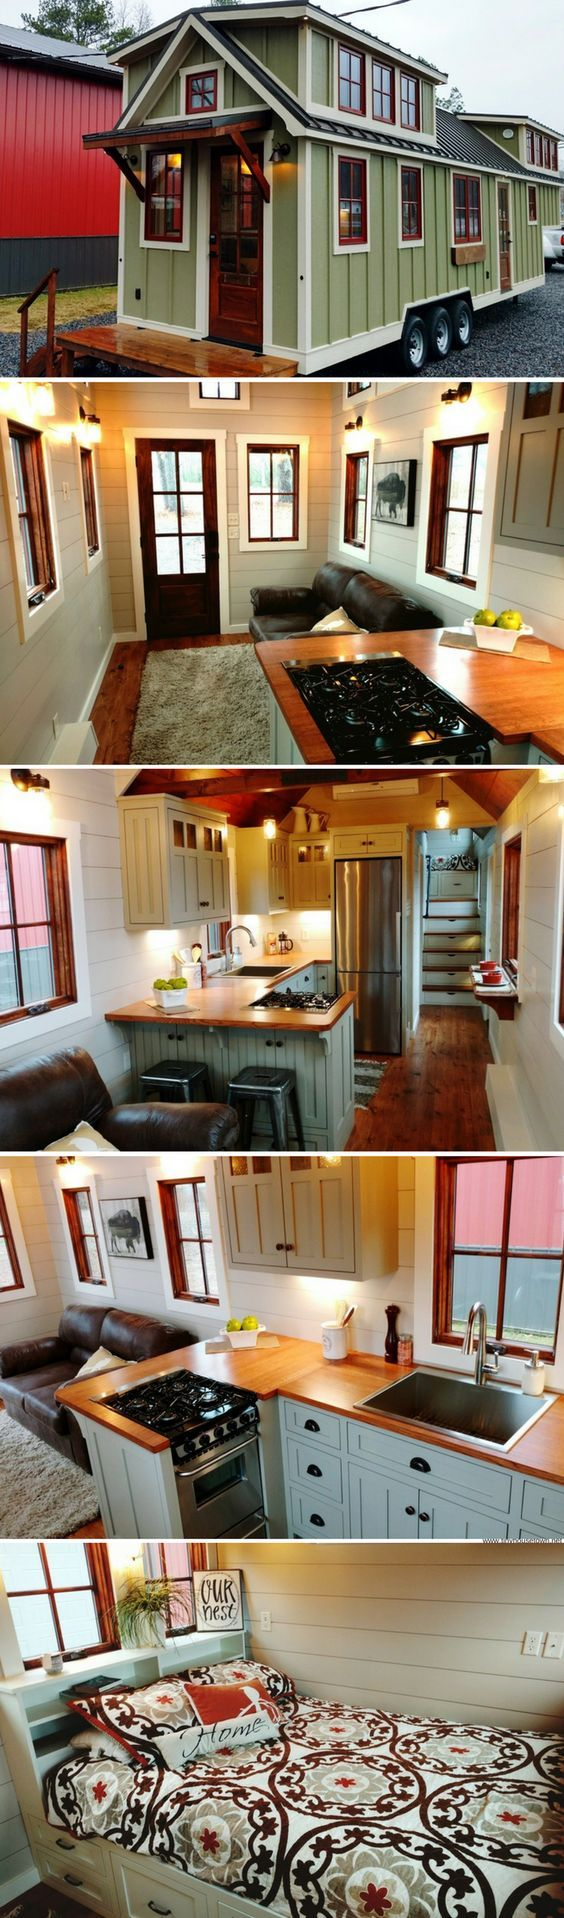 Converting sheds into livable space miniature homes and spaces - Cute But Would I Need Special Pans To Fit In That Tiny Oven A Luxury 352 Sq Ft Farmhouse From Timbercraft Tiny Homes